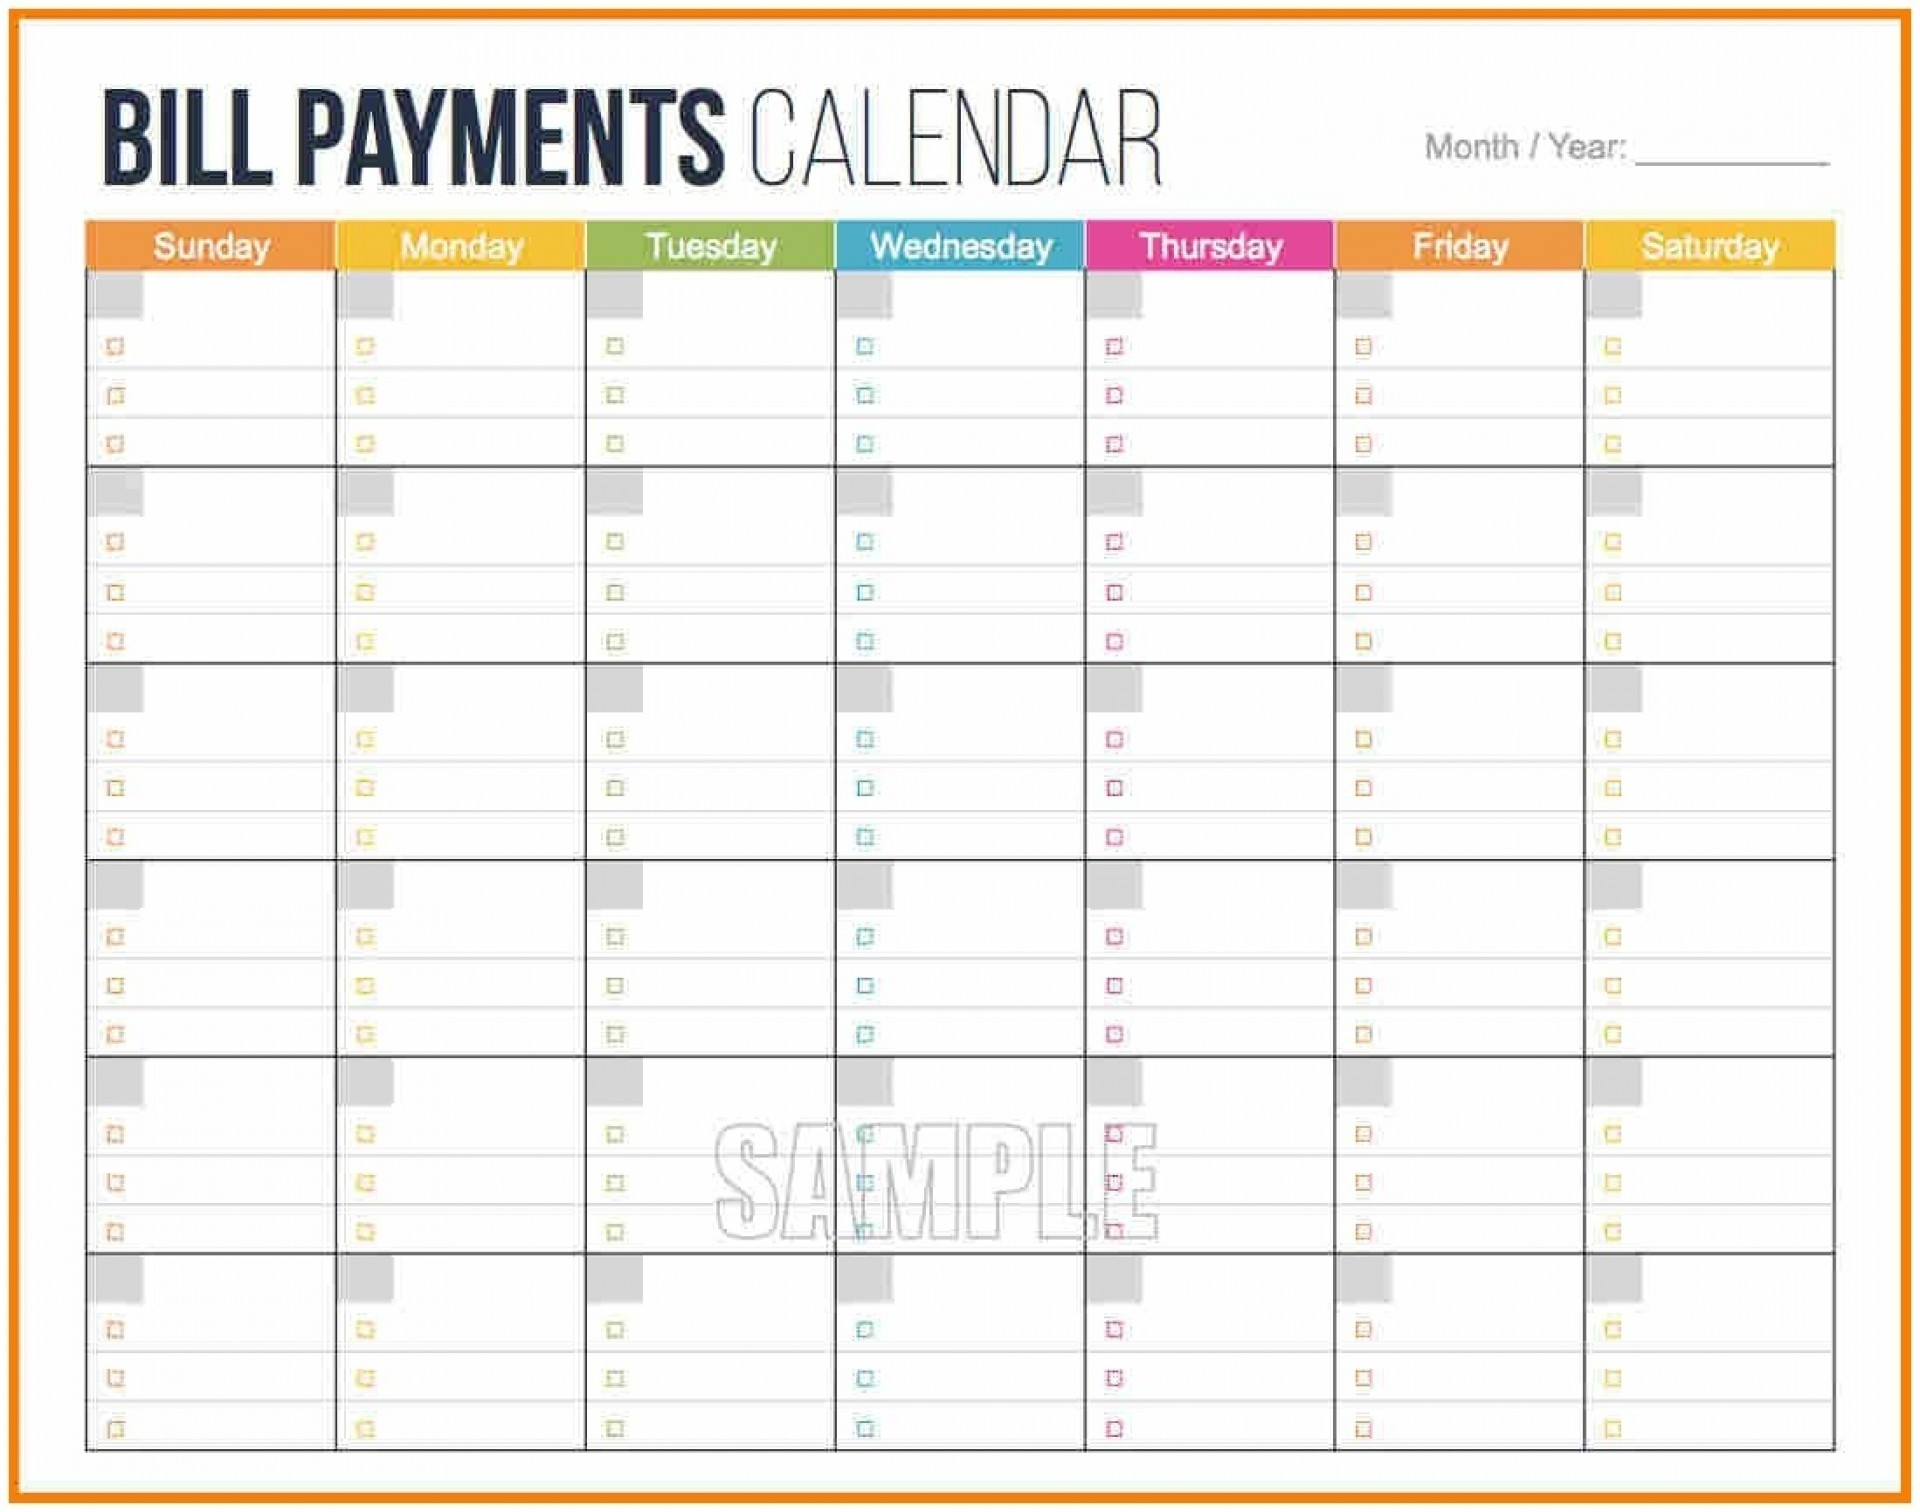 006 Bill Payment Schedule Template 20Schedule Format Excel Monthly within Bill Payment Calendar Template Printable